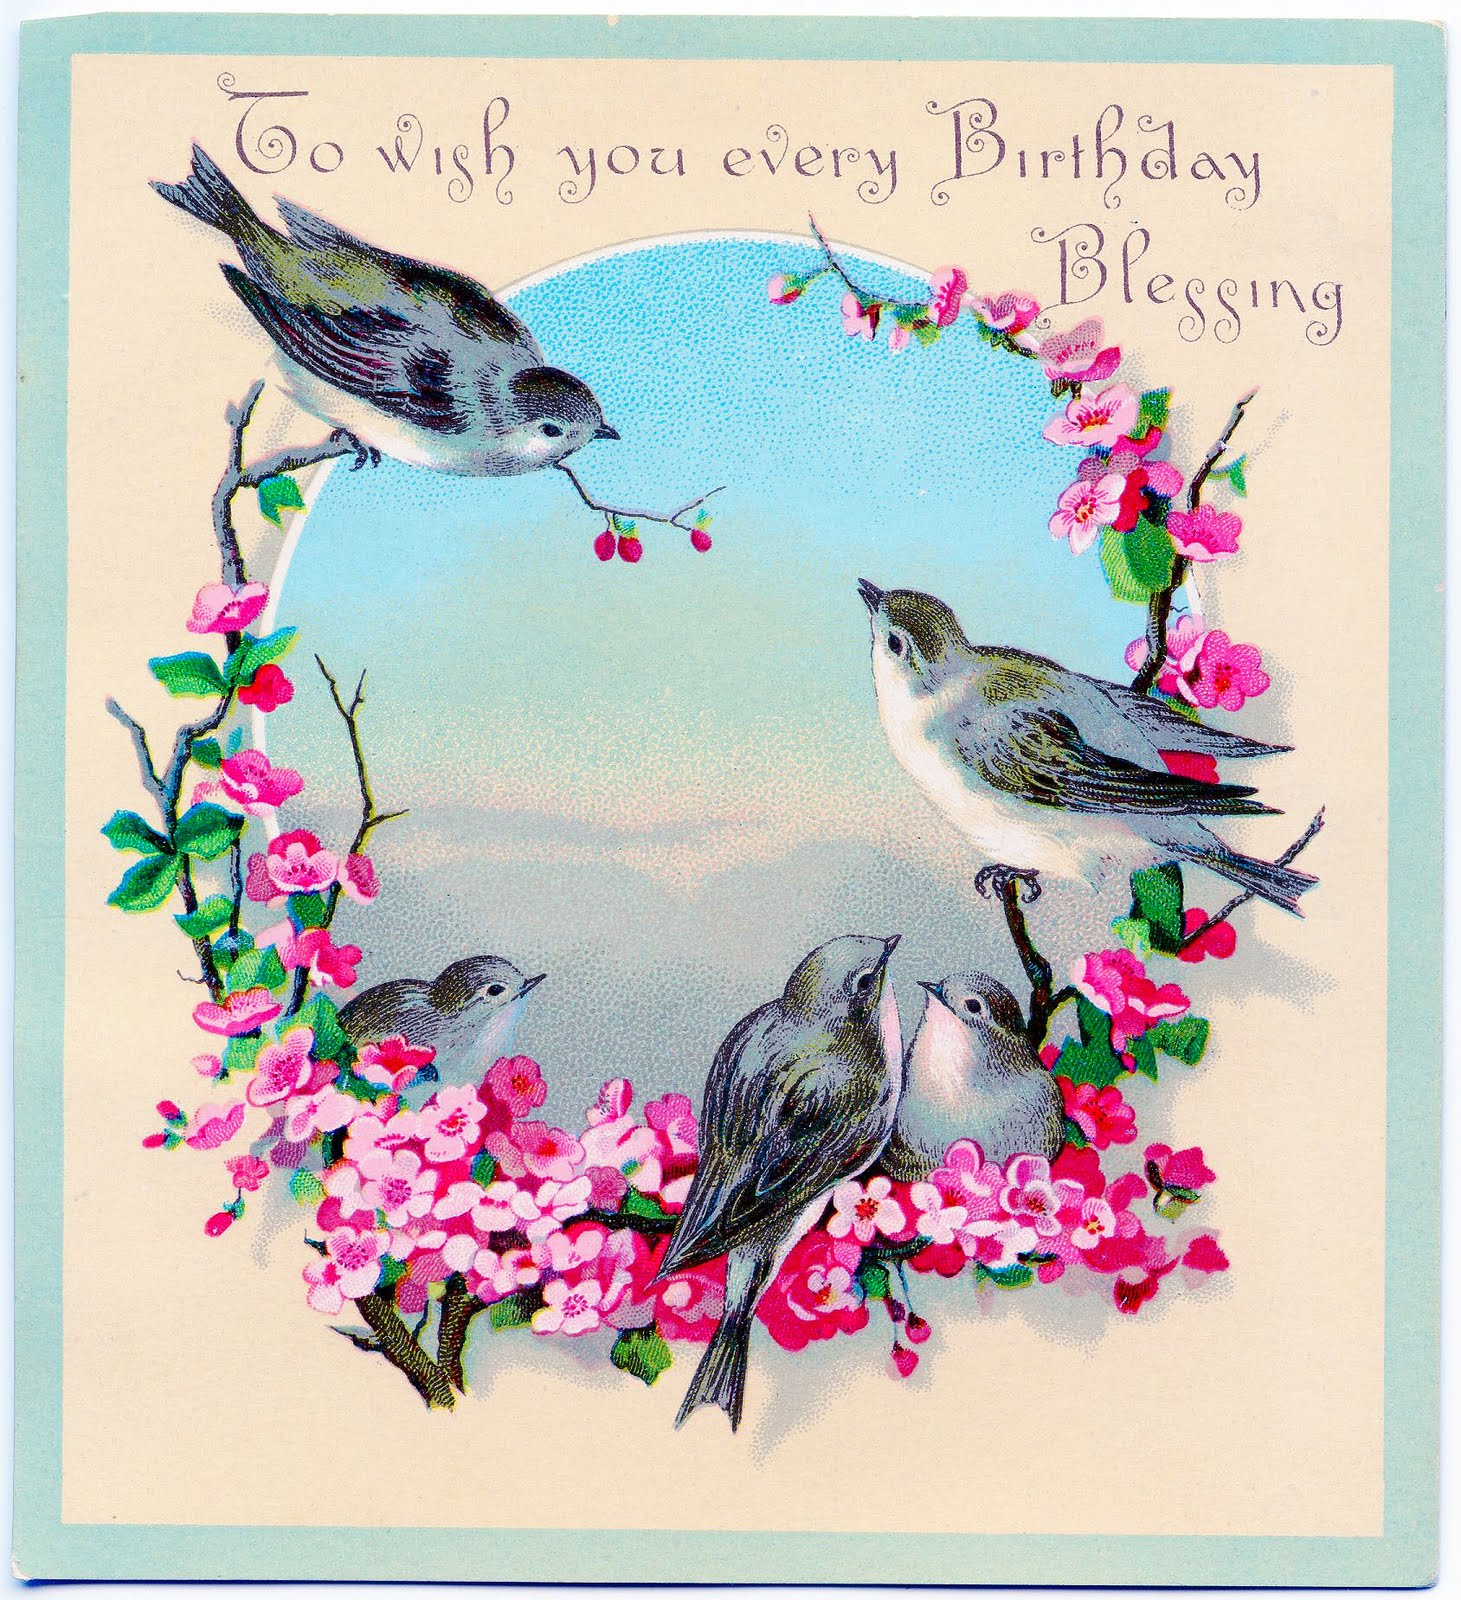 Vintage Cousin Birthday Clipart.